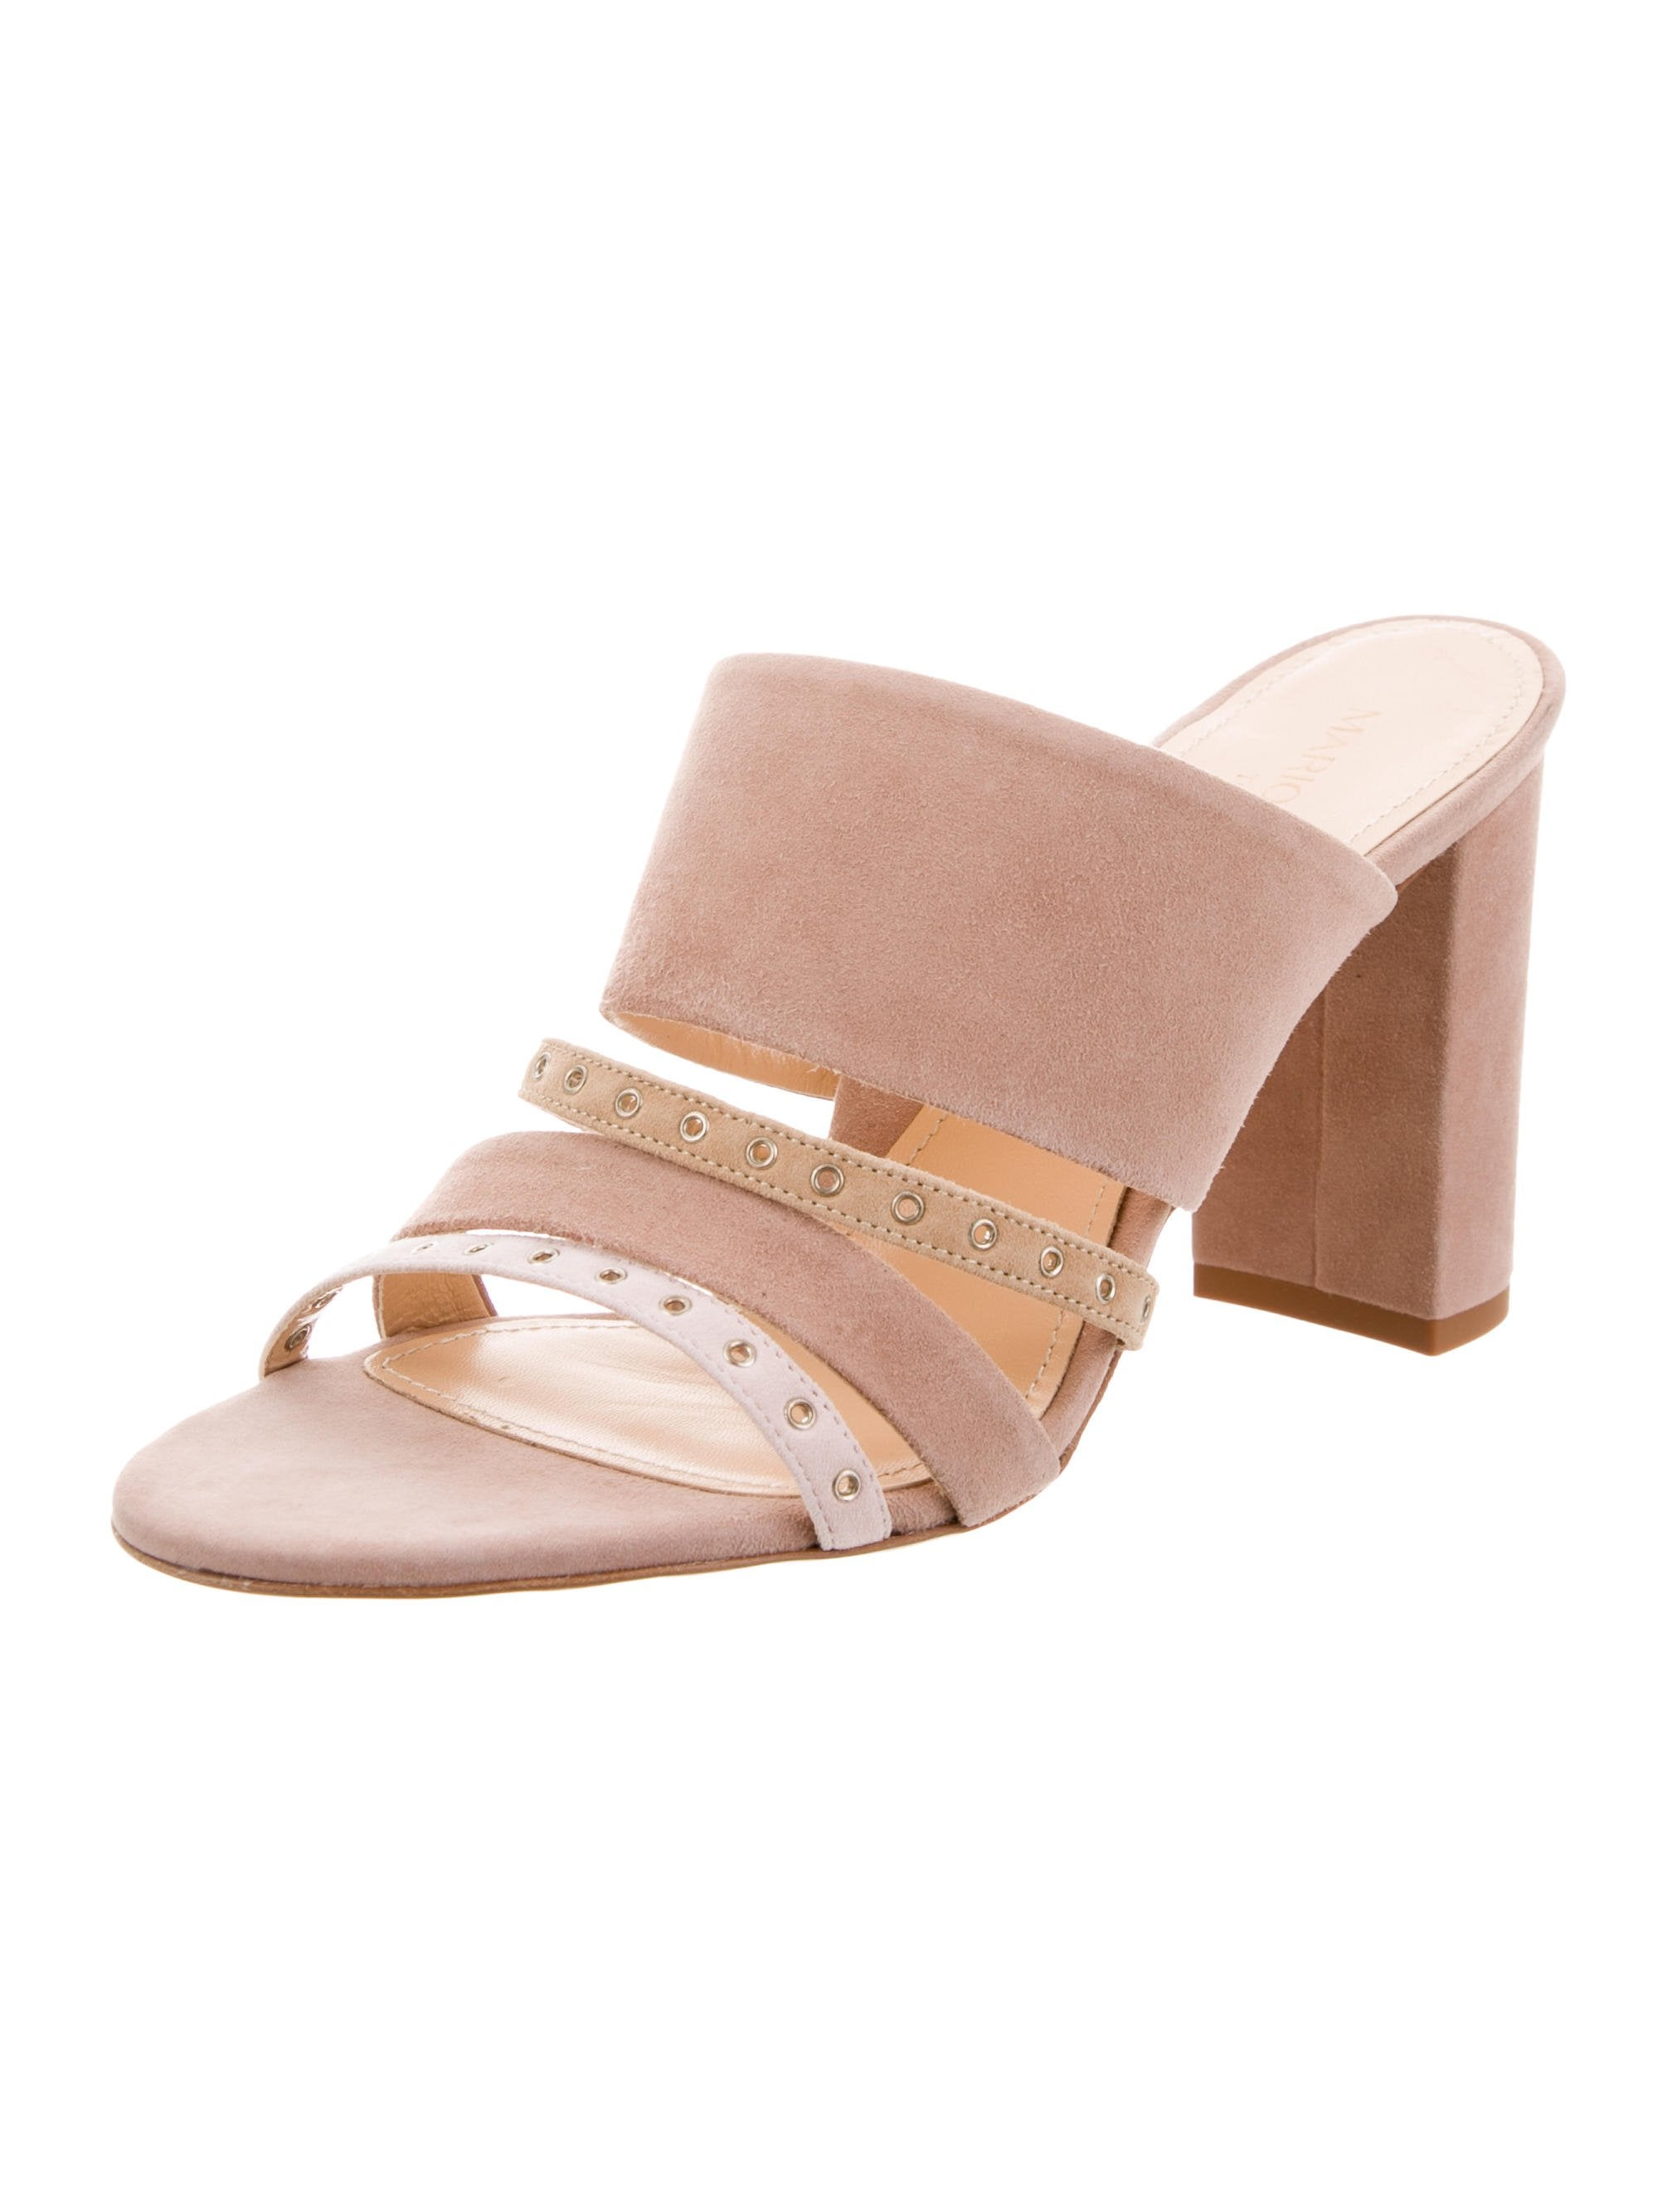 Marion Parke Lenny Multistrap Sandals w/ Tags discount 2014 wiki cheap online discount pick a best free shipping store hXIIw6eL